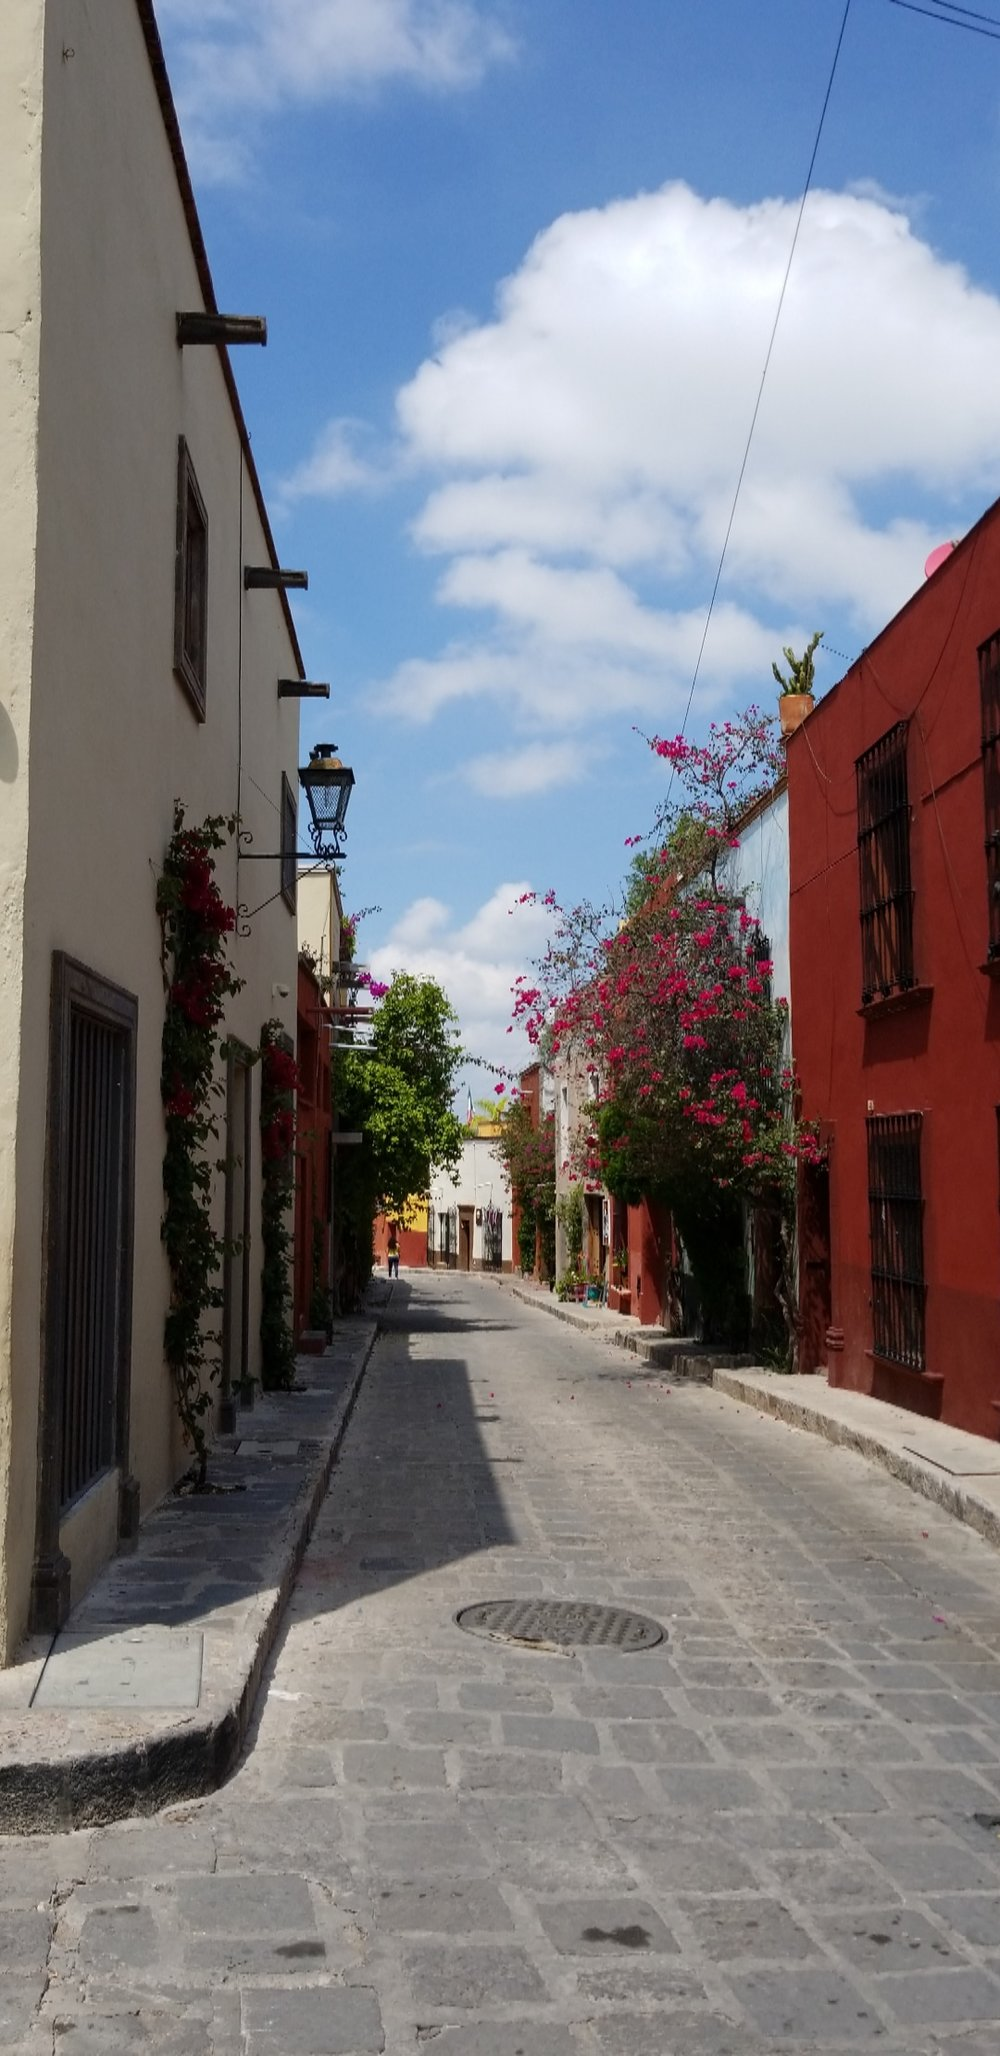 50 shades of color around every corner in San Miguel de Allende.